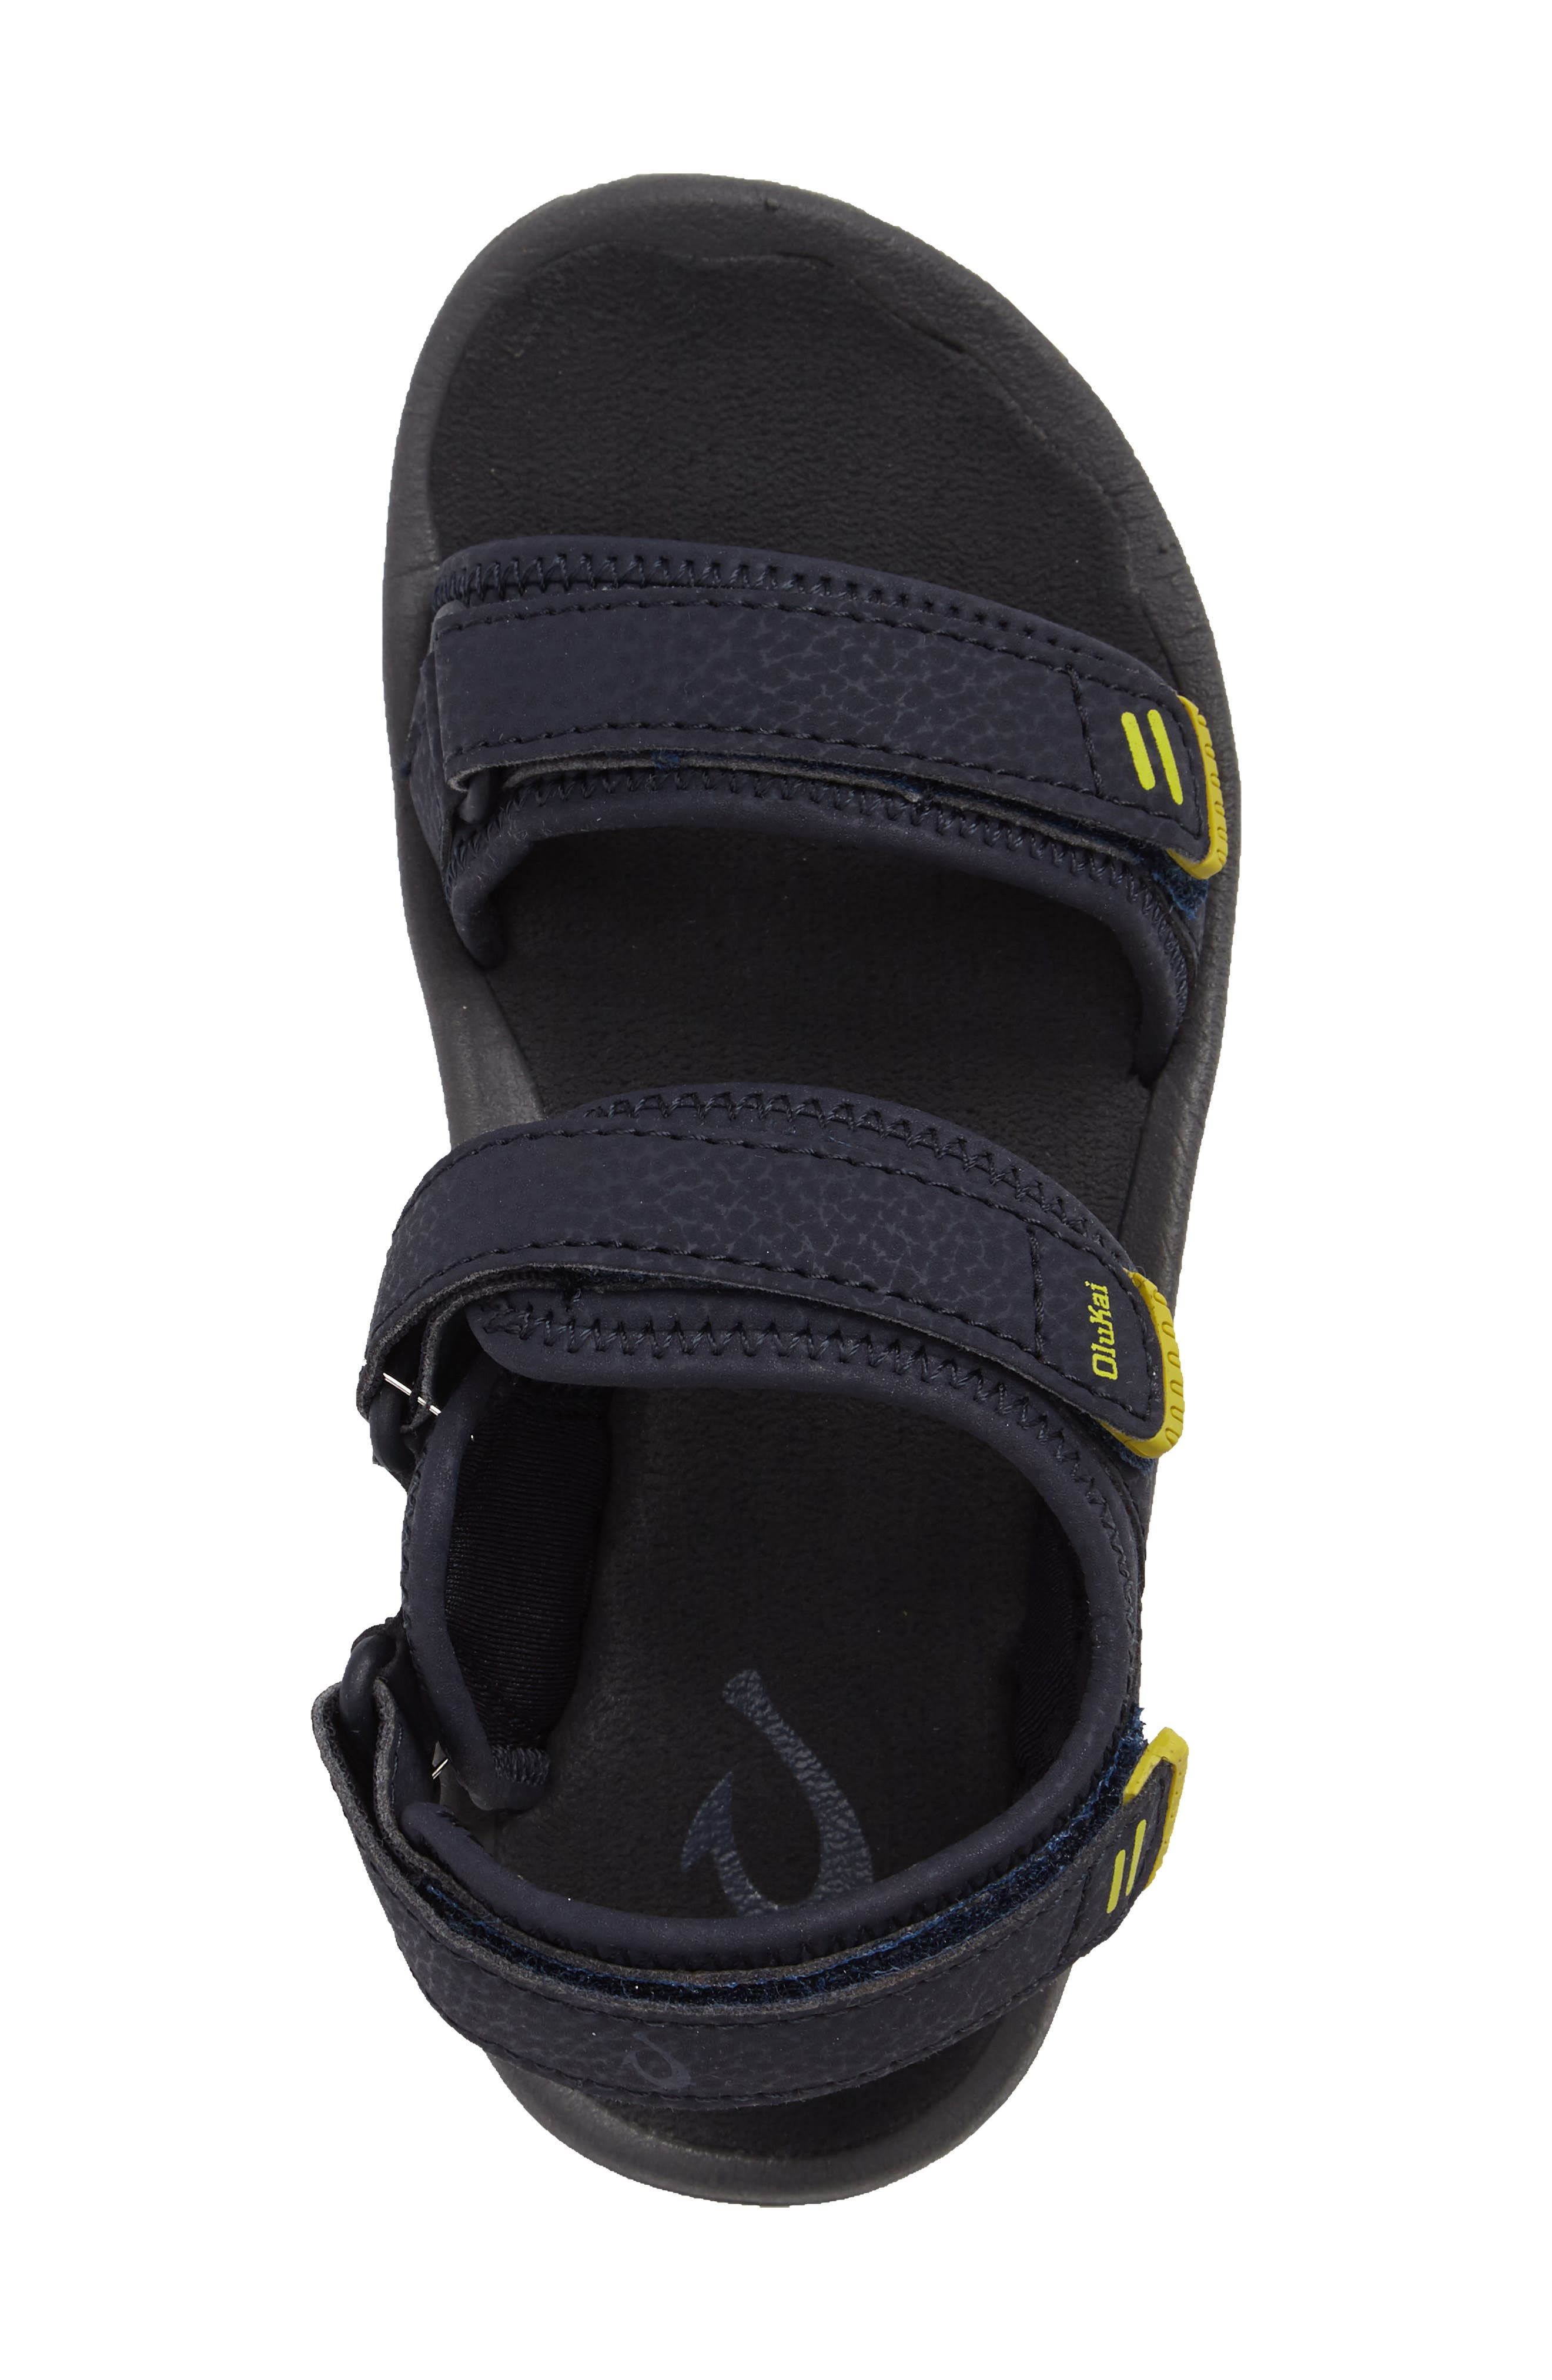 Alternate Image 3  - OluKai Pahu Sandal (Toddler, Little Kid & Big Kid)